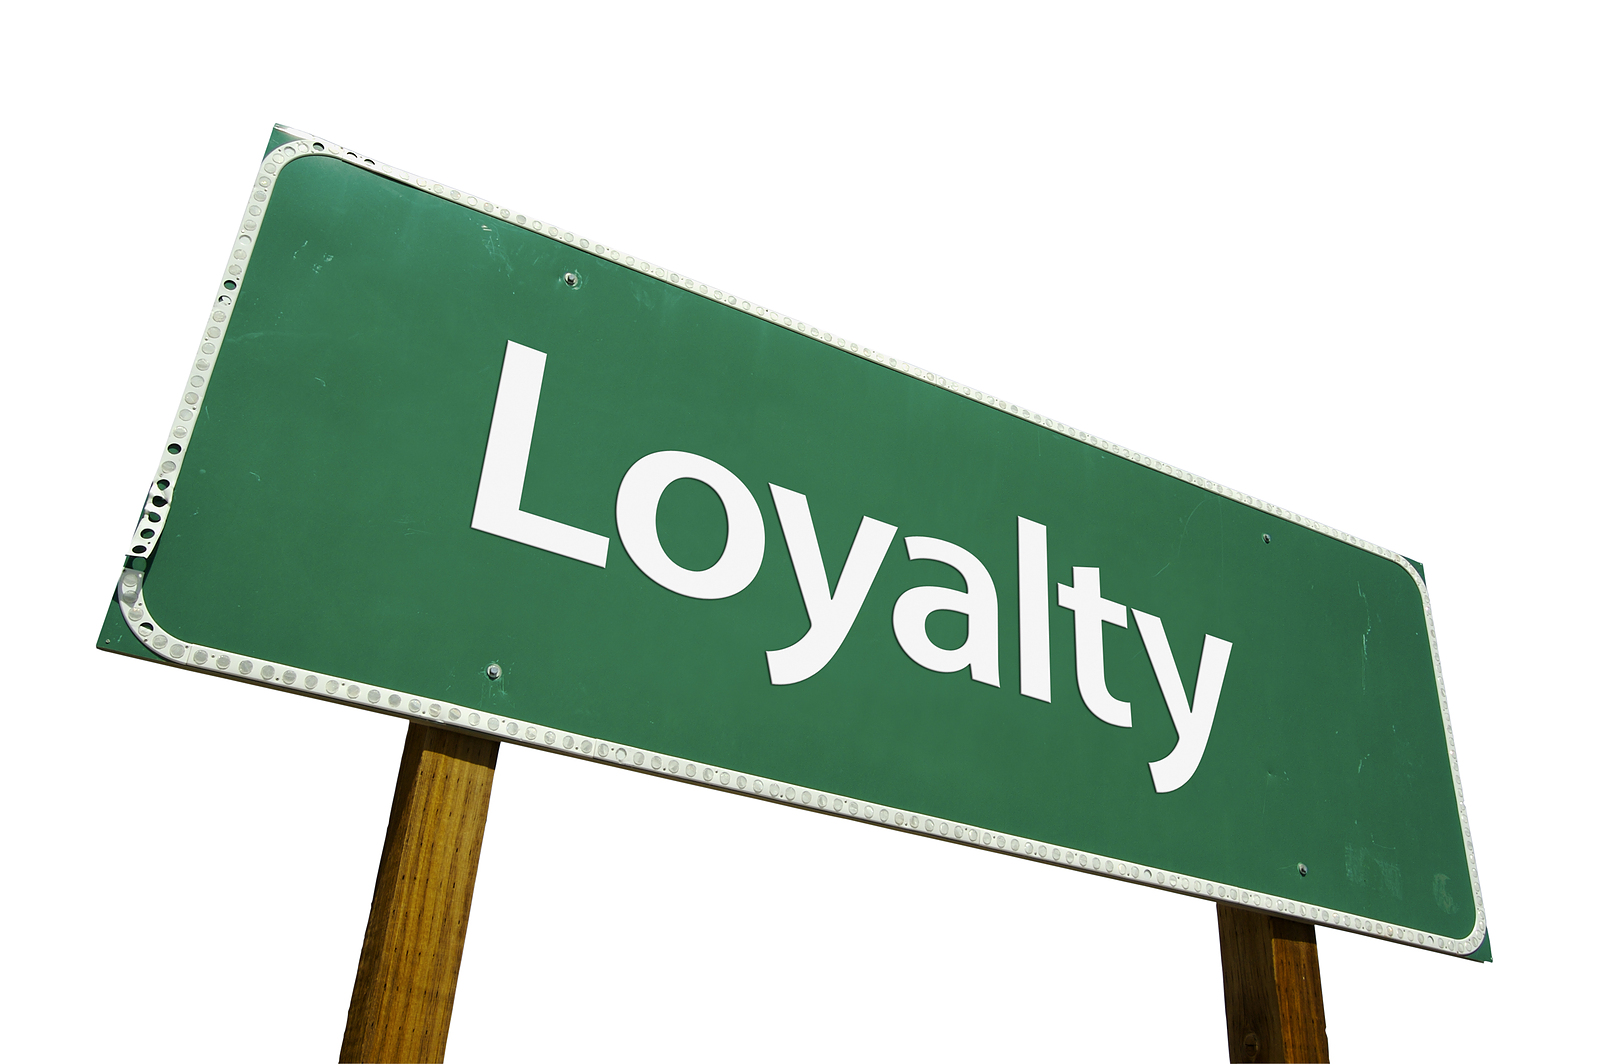 loyalty what is it A loyalty program is an organized marketing strategy merchants set them up to encourage customers to come back and buy their goods or use their services a typical loyalty program would require a customer to register with the merchant offering the program so they can accumulate loyalty points.